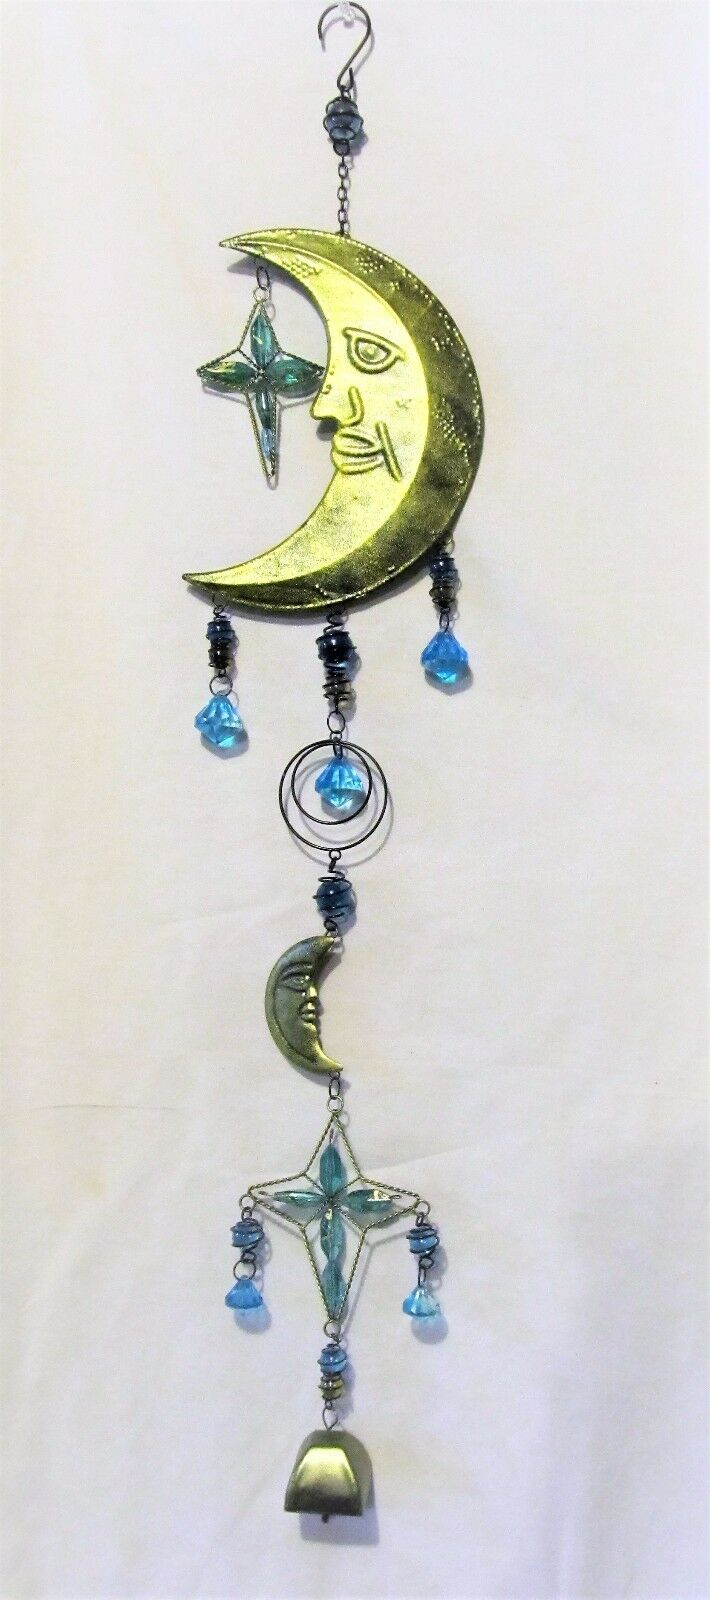 Moon & Stars metal wind chime with acrylic jewels yard or porch celestial decor